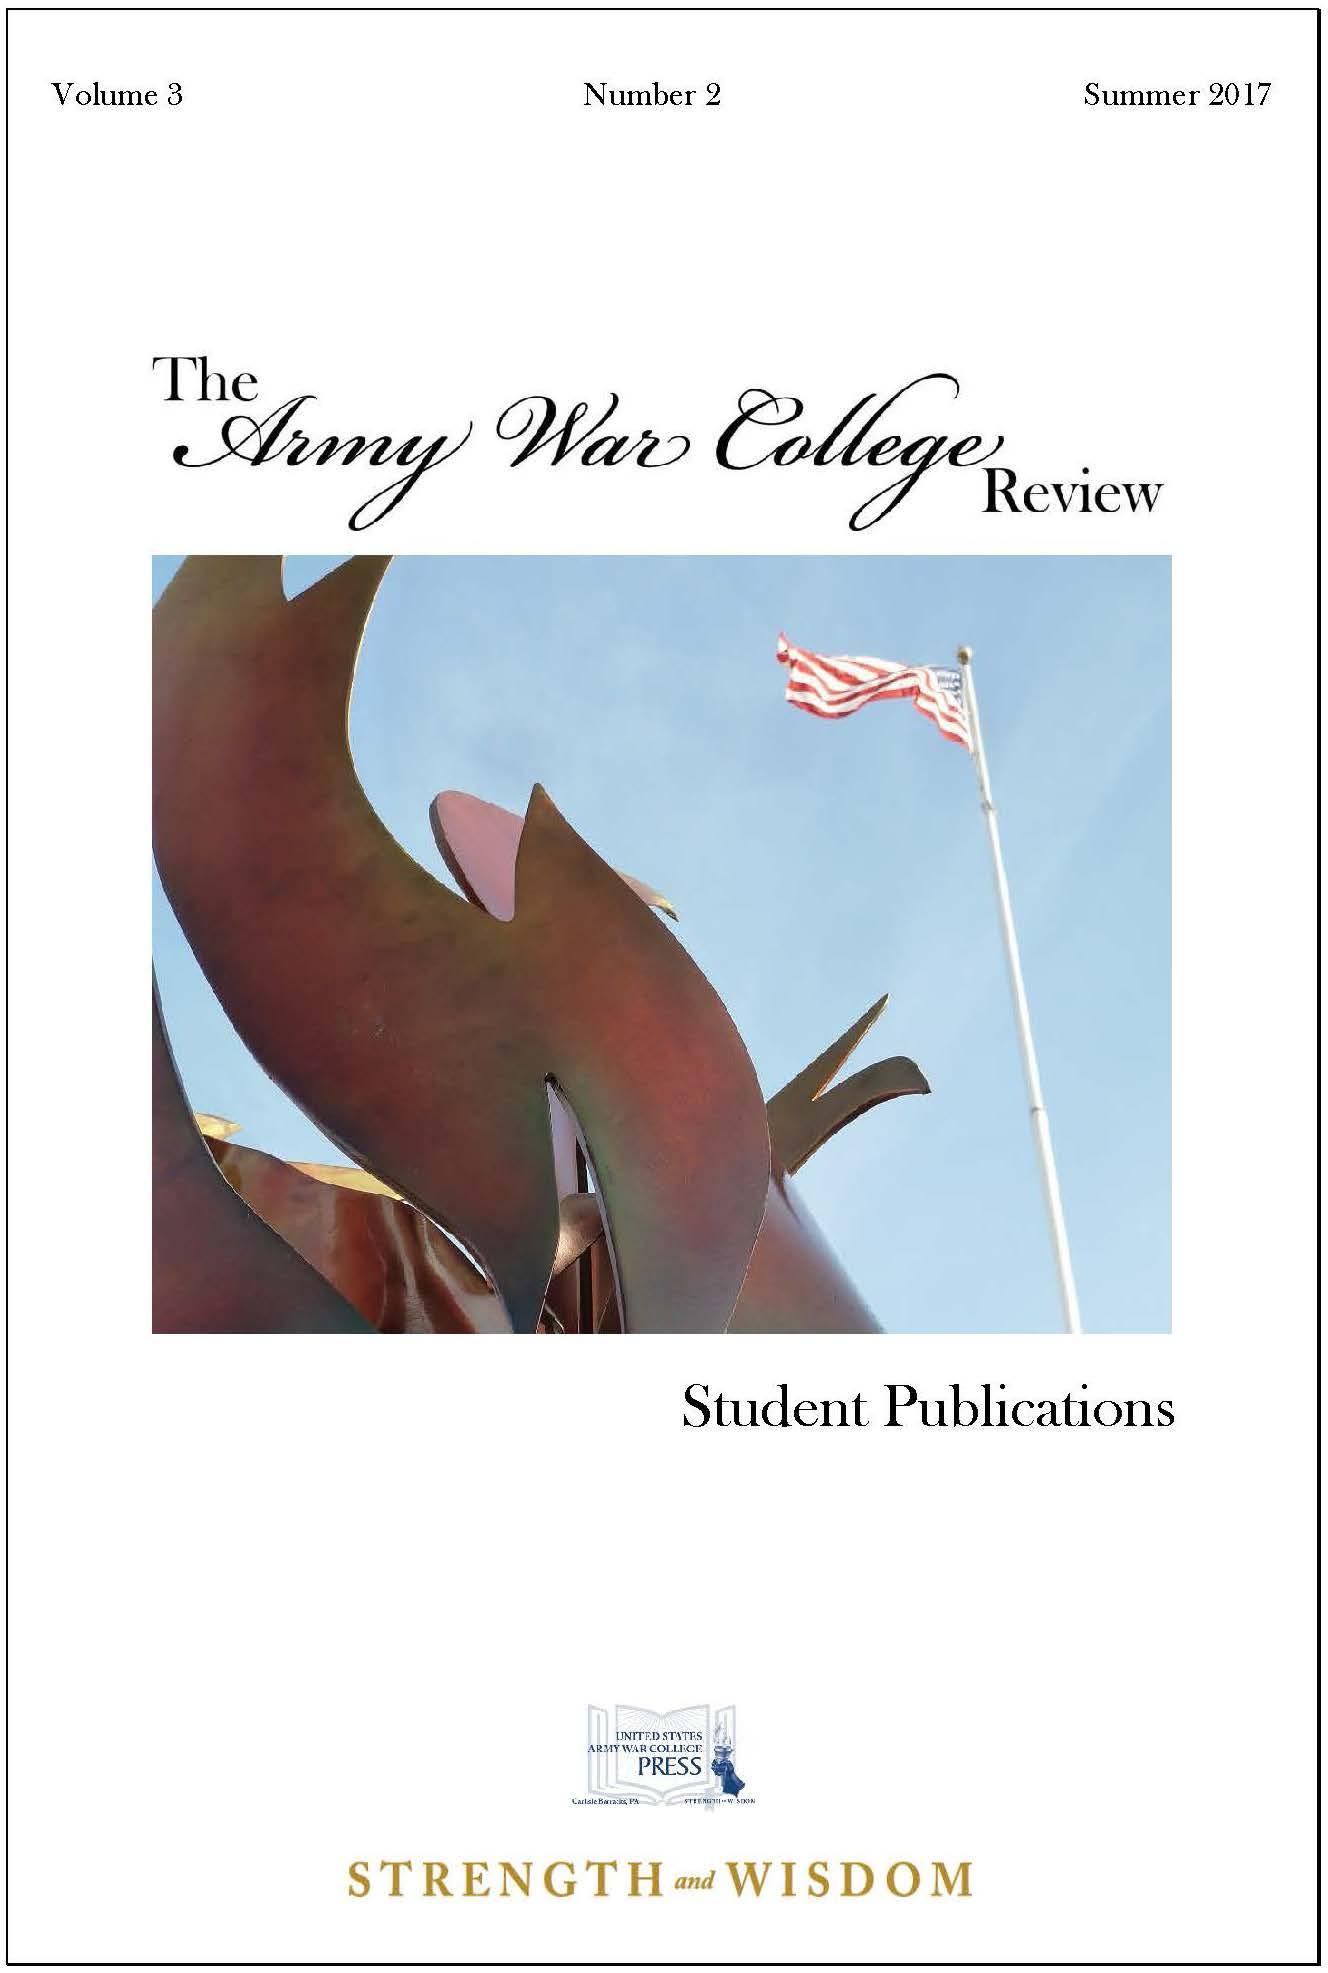 The Army War College Review Vol. 3 No. 2